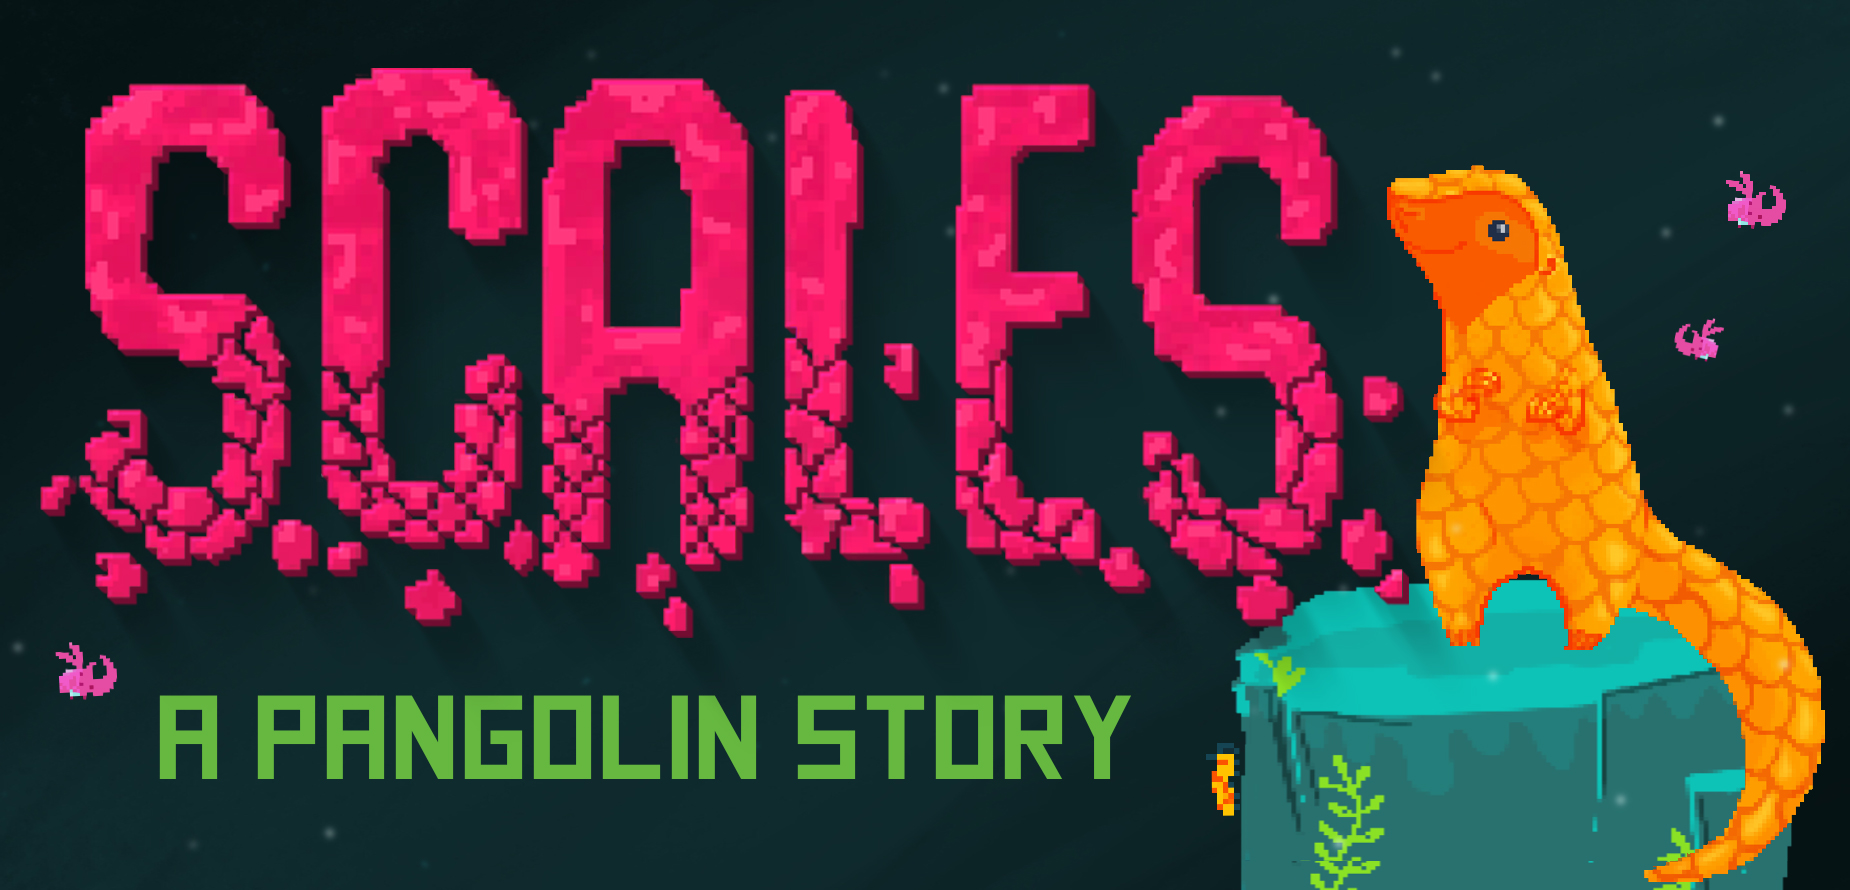 Scales: A Pangolin Story